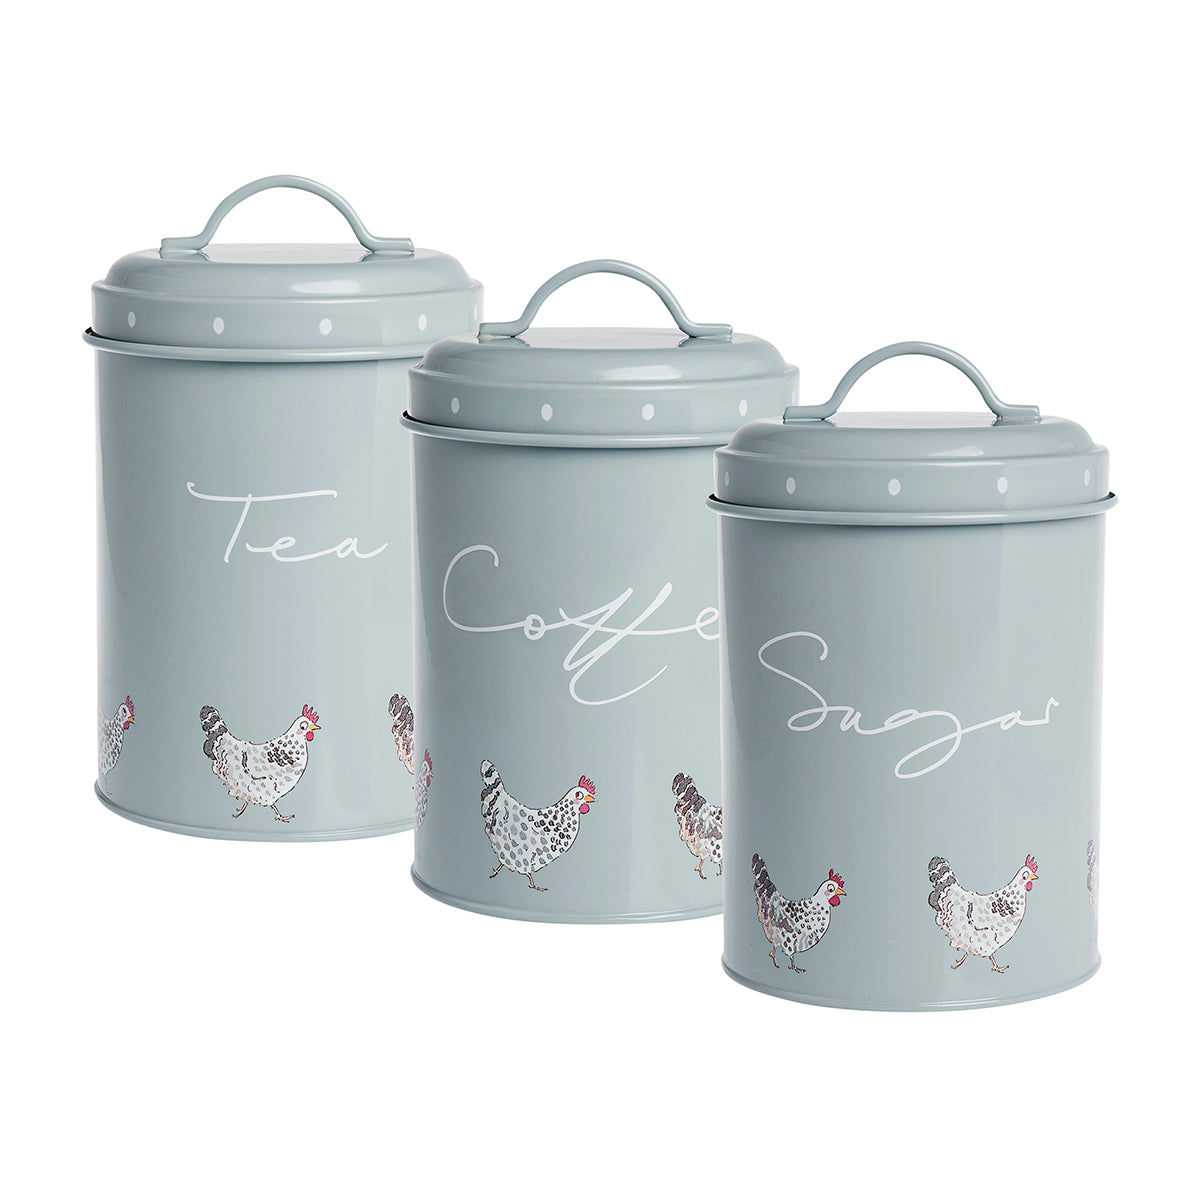 Chicken Storage Tins (Set of 3)